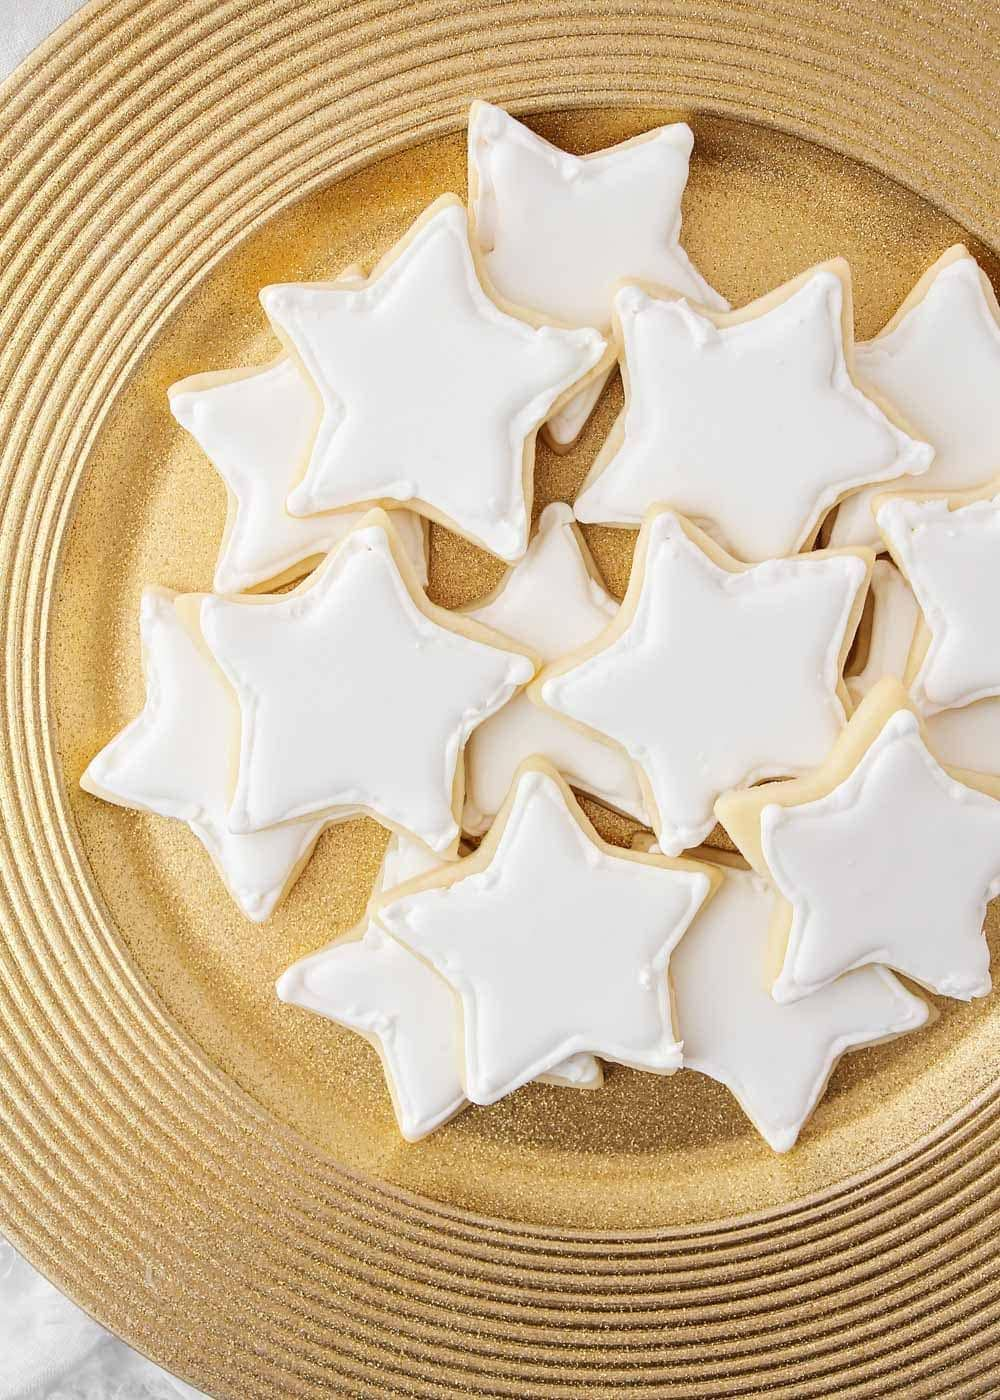 White royal icing on star shaped cookies